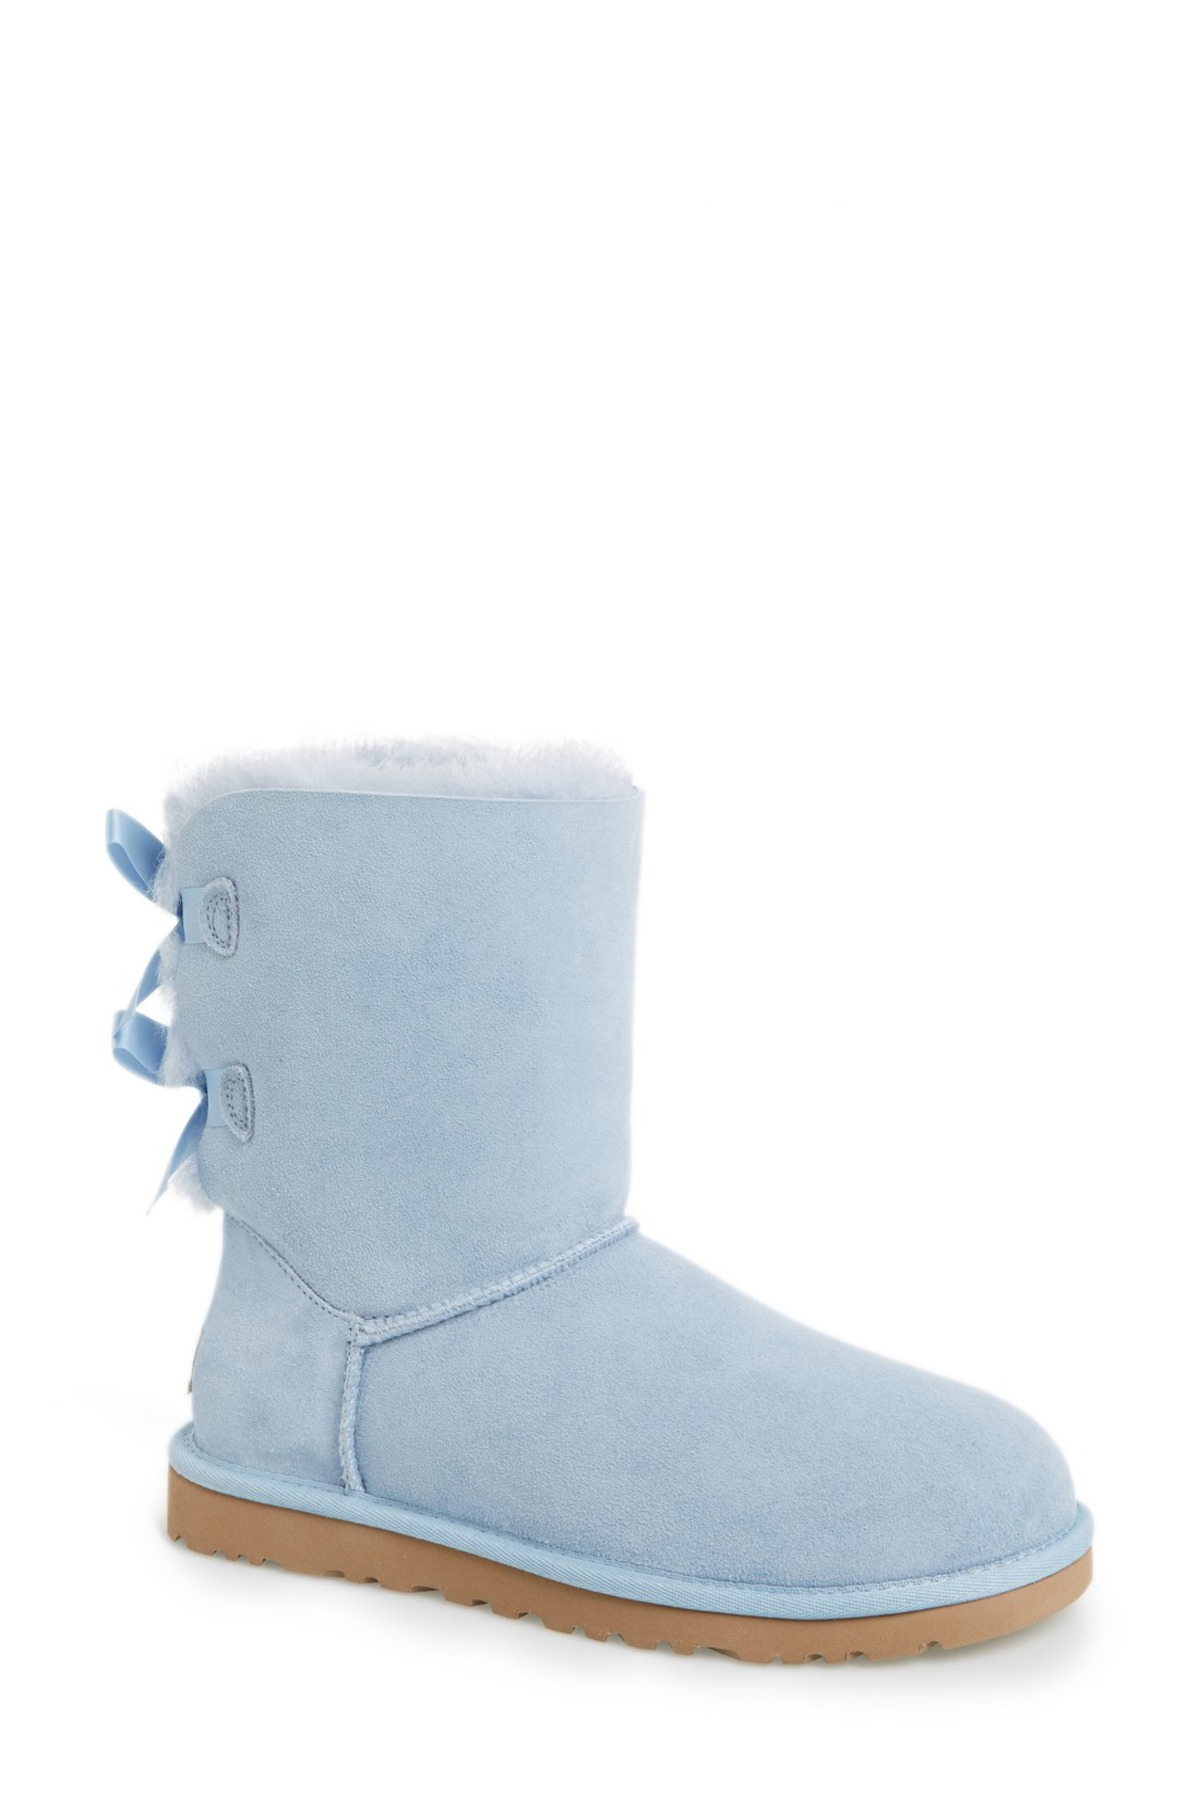 ugg bailey bow genuine shearling lined boot in blue hnb lyst. Black Bedroom Furniture Sets. Home Design Ideas